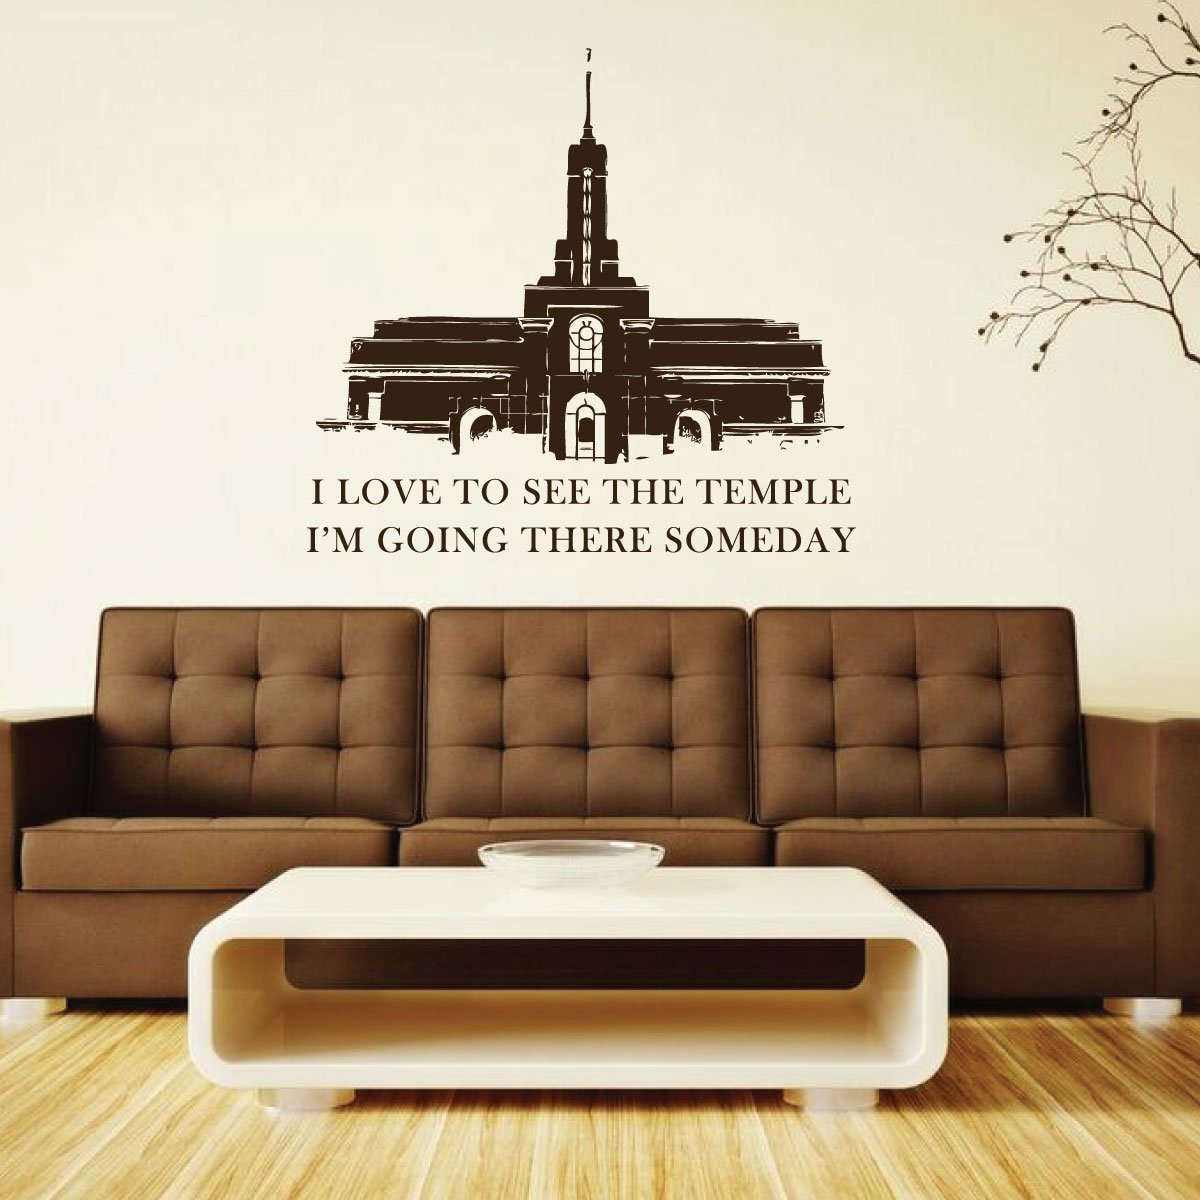 LDS Temple Decal - Mt Timpanogos Mormon Temple Vinyl Sticker Mural with Primary Song Quote - Latter-day Saint Home Decor for Living Room, Bedroom, Kitchen